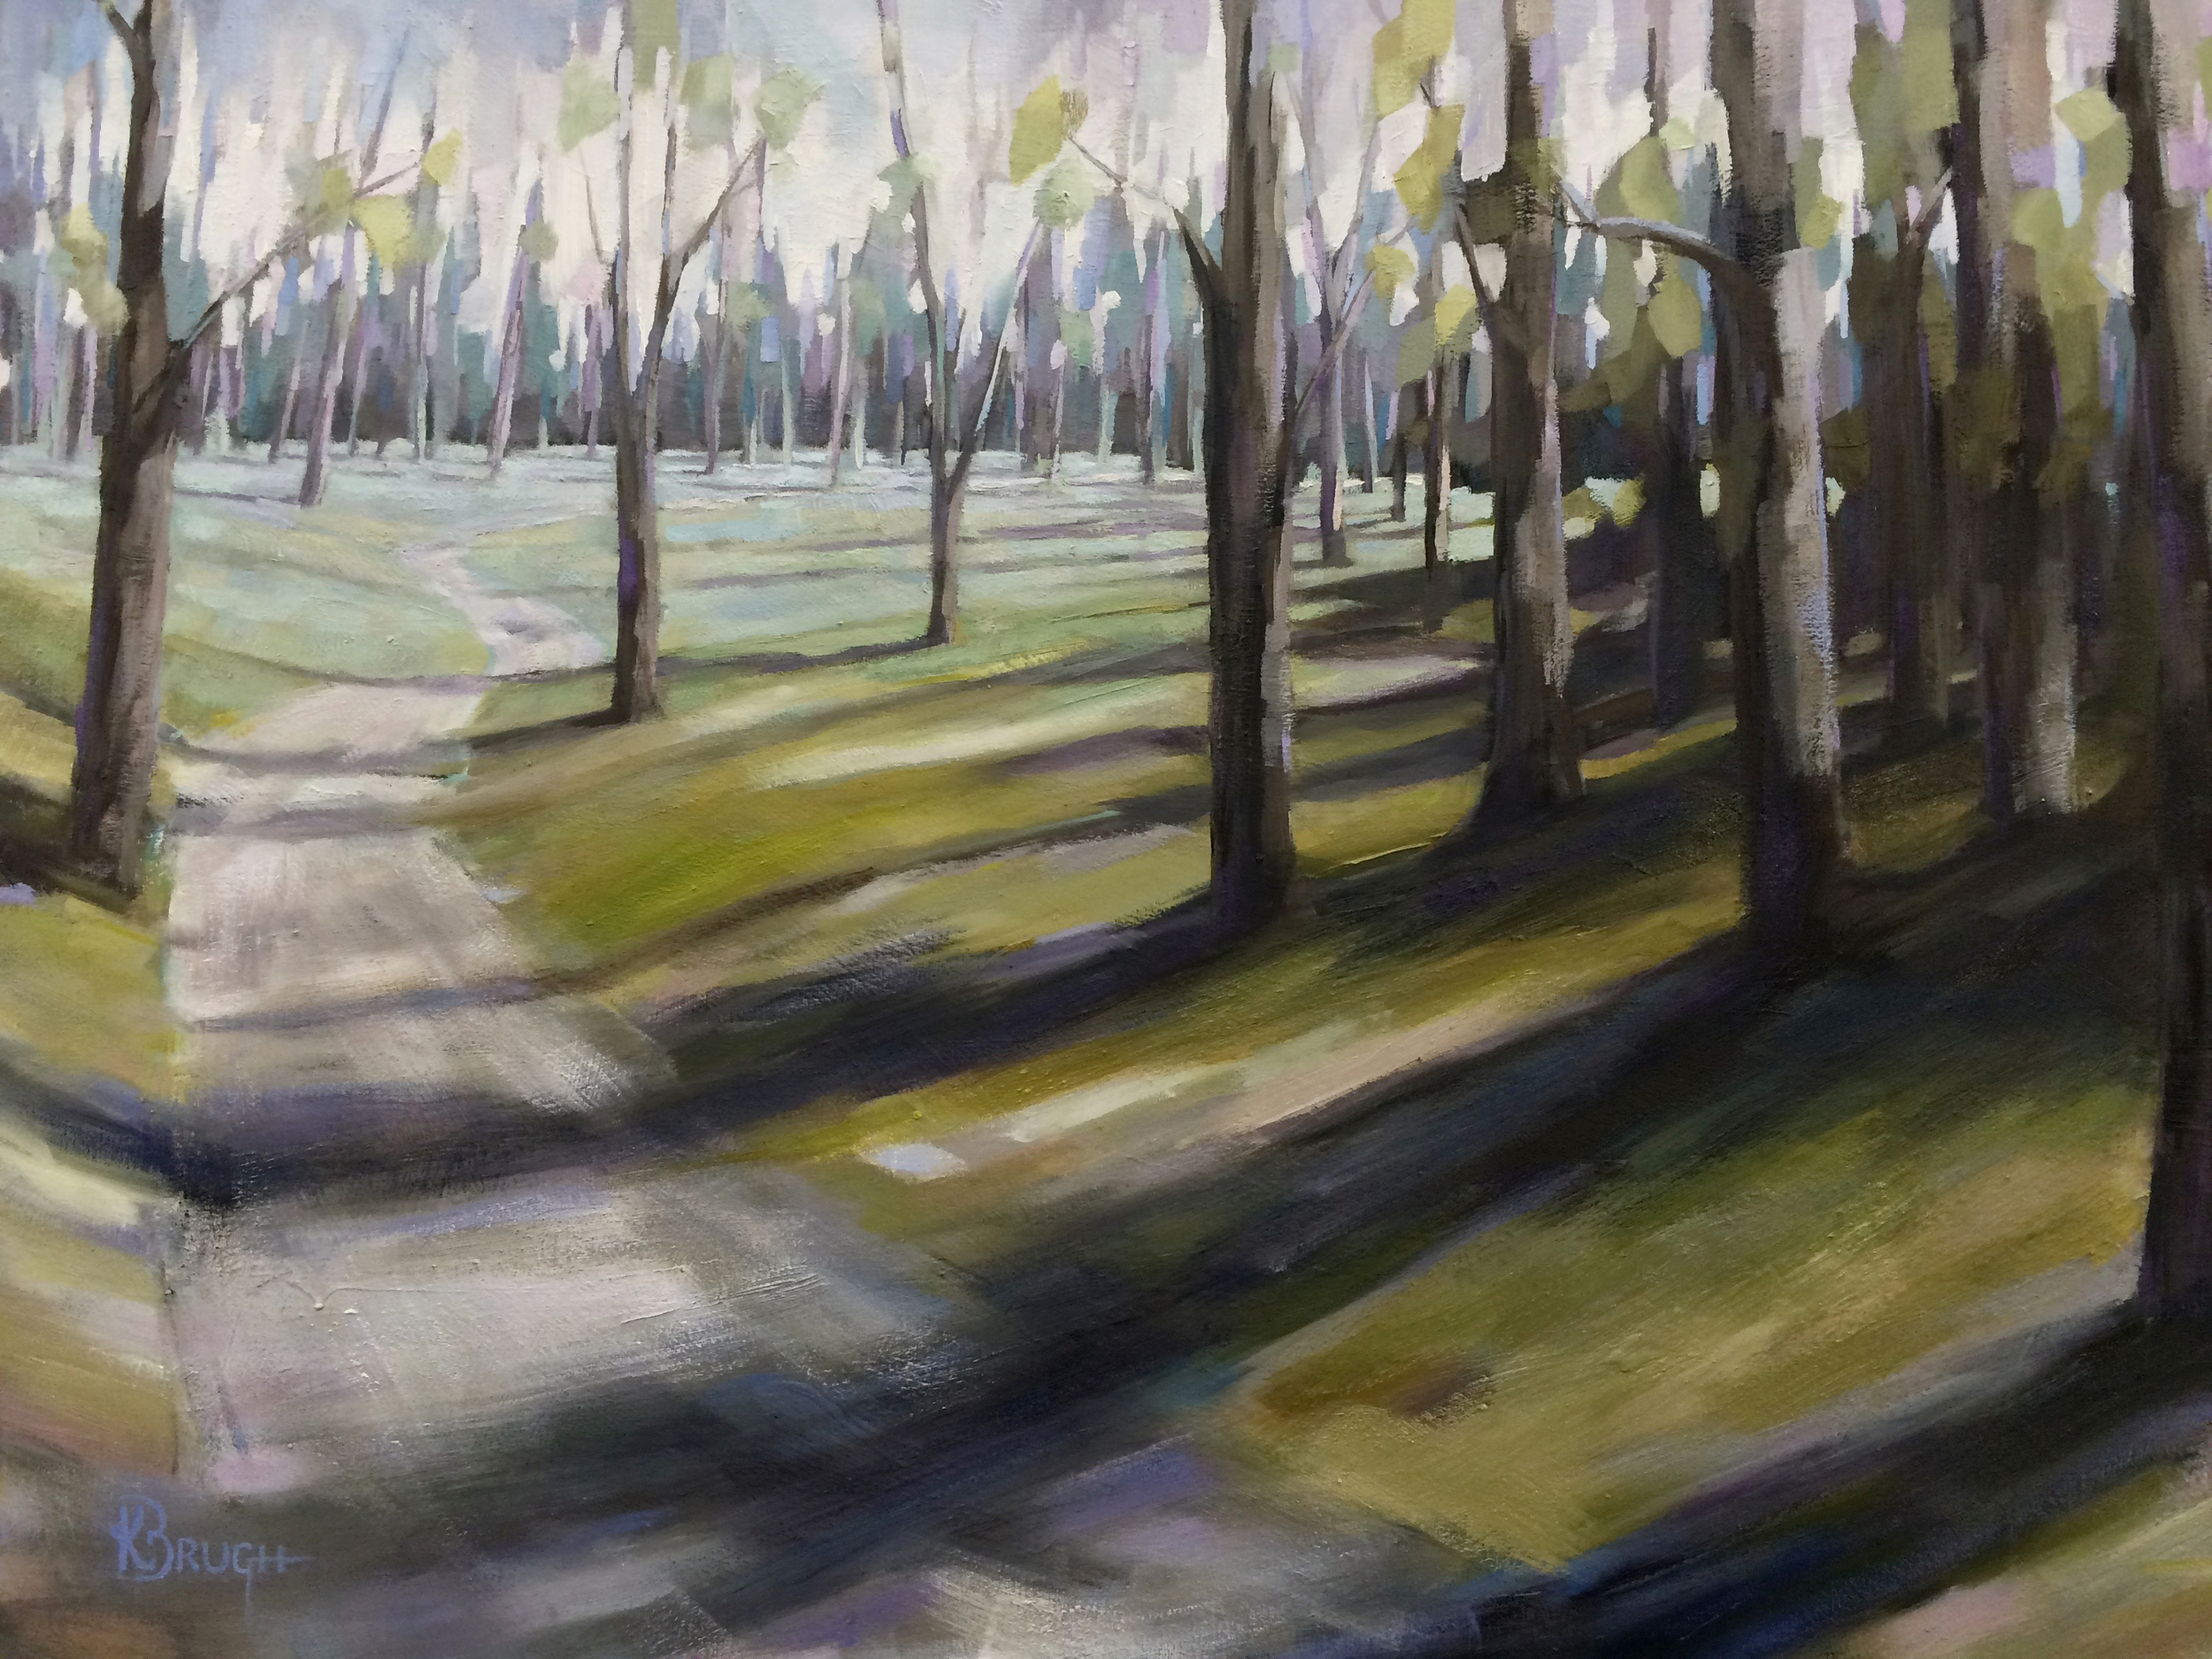 Meandering Through the Woods by Kelley Brugh_36x48, Oil on canvas.jpg